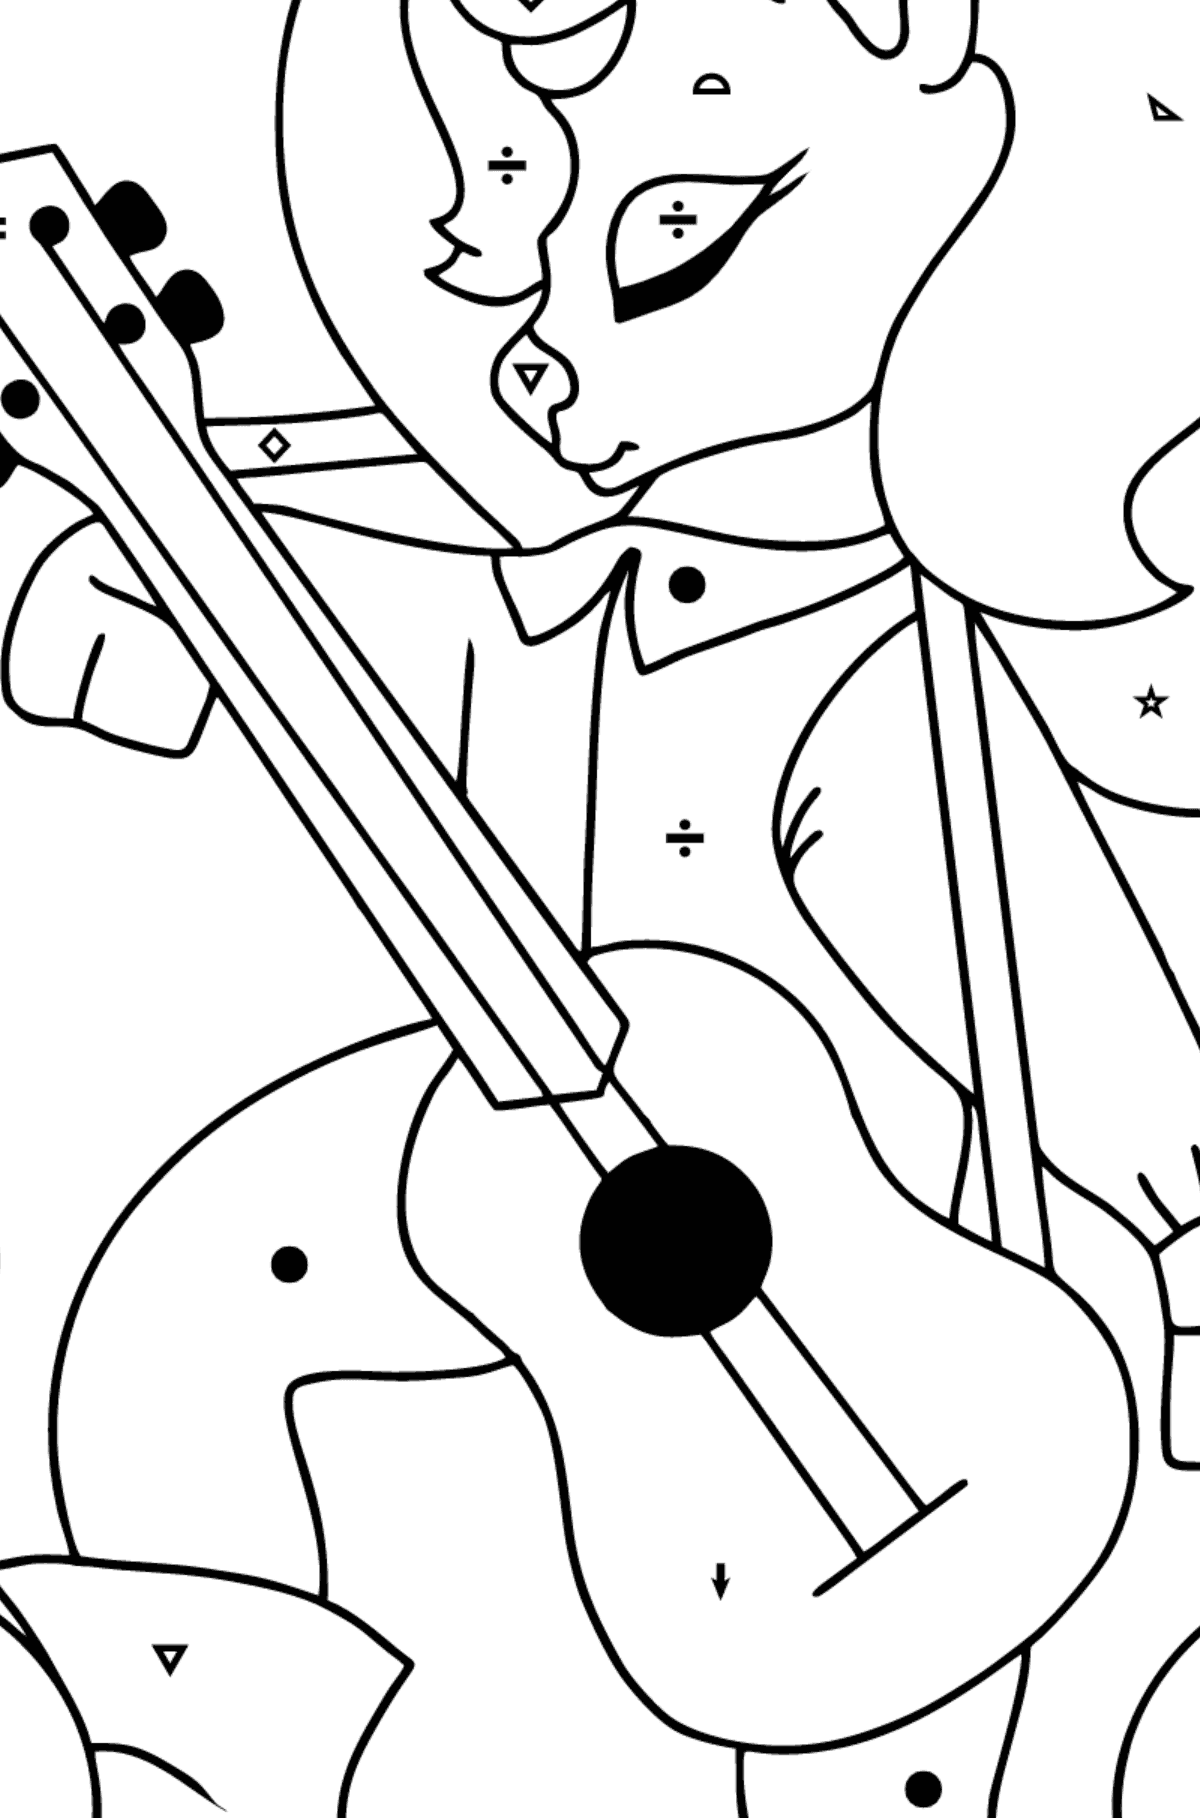 Coloring Page - A Unicorn with a Guitar - Coloring by Symbols and Geometric Shapes for Children